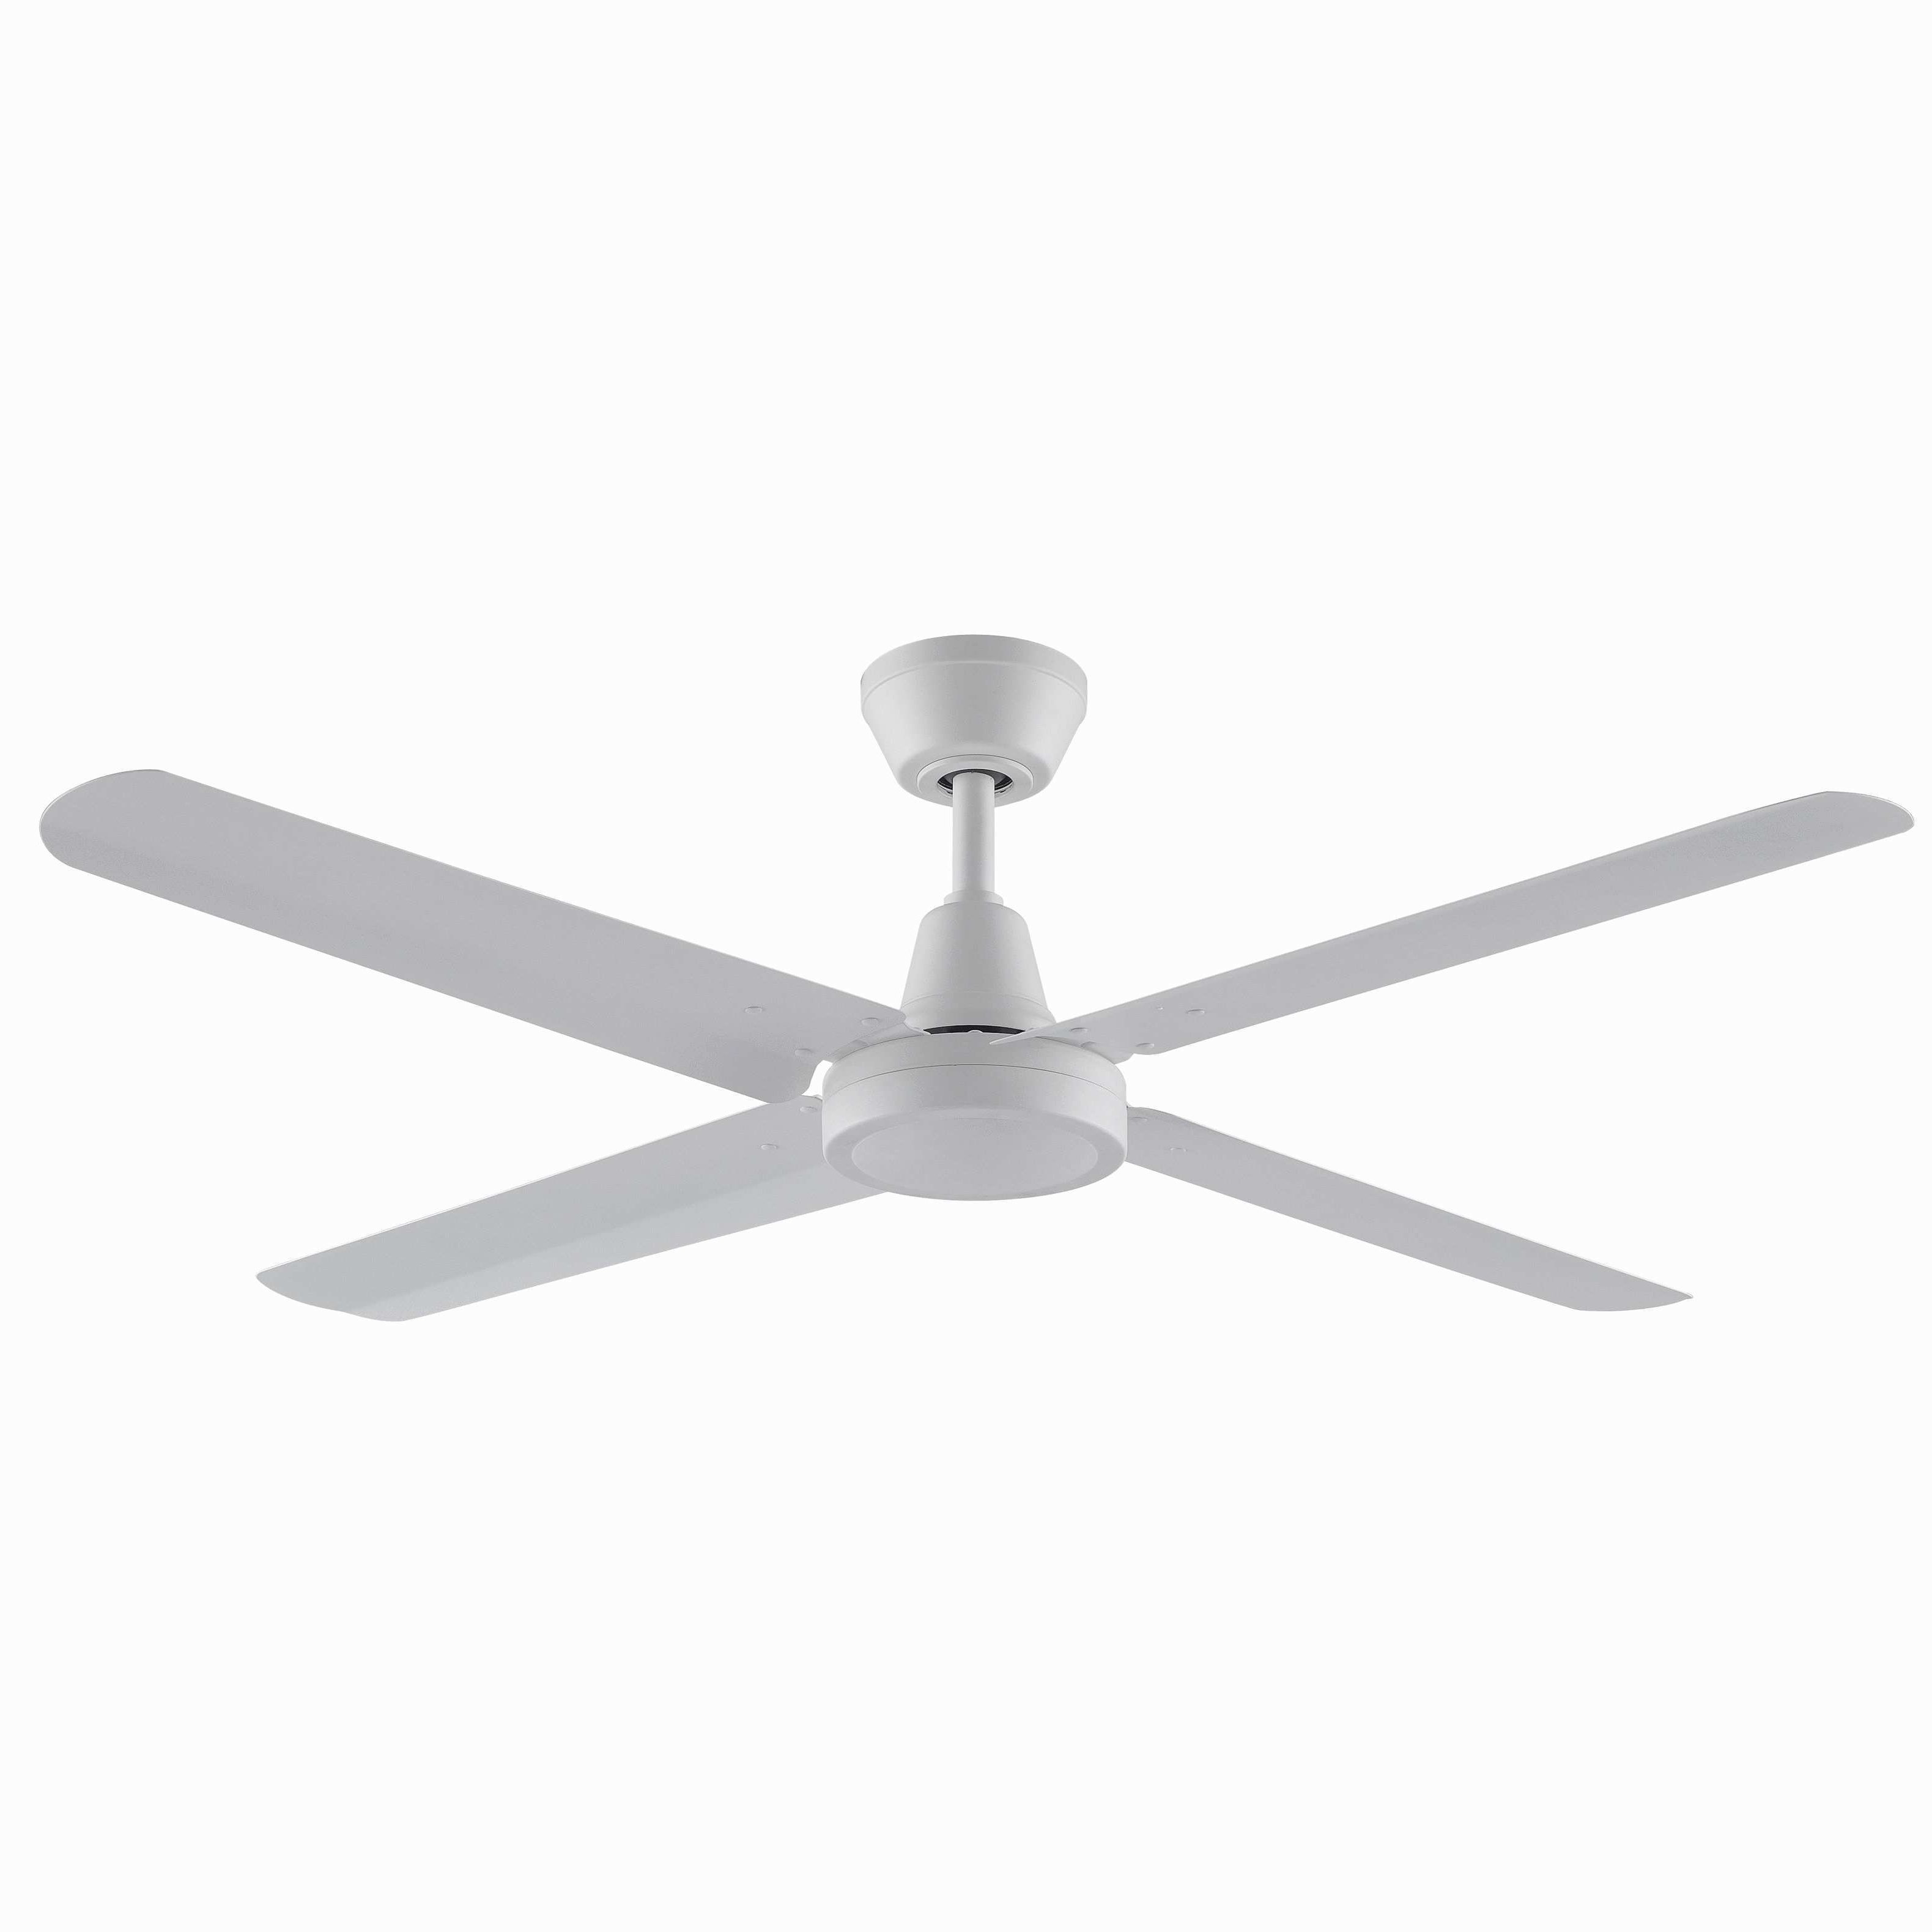 Commercial Outdoor Ceiling Fans Regarding Well Liked Commercial Outdoor Ceiling Fans (View 5 of 20)